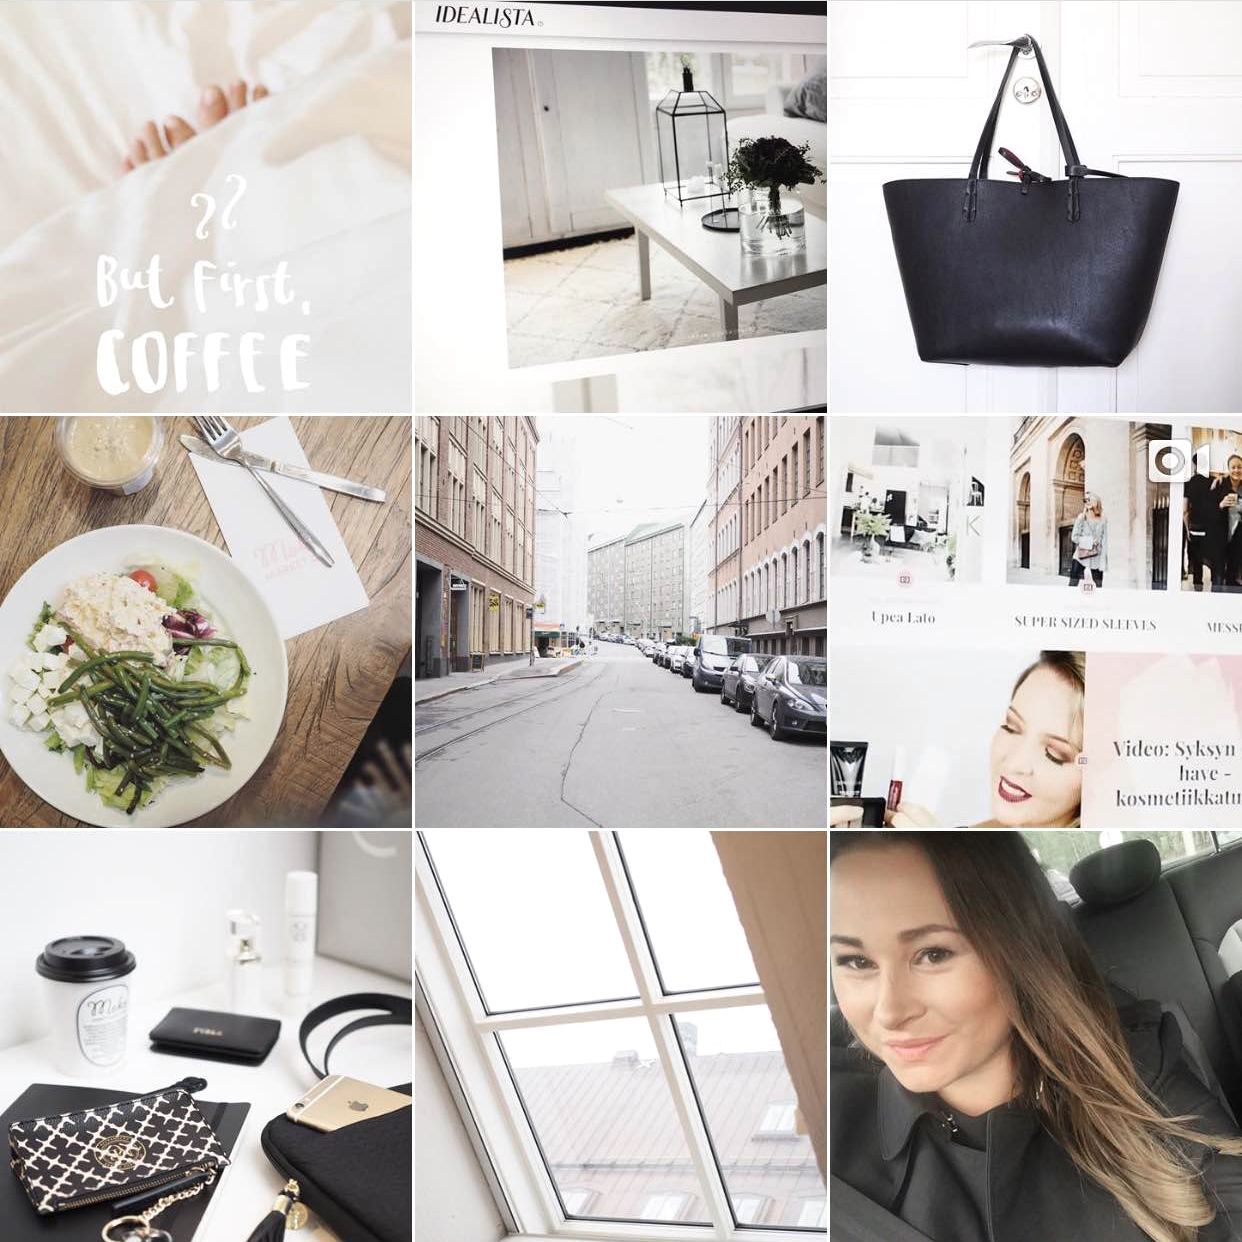 C and the city - My new job - follow Aller Media Oy on Instagram: @allerilaiset - read more on the blog: //www.idealista.fi/charandthecity/2016/10/27/allerilaiset